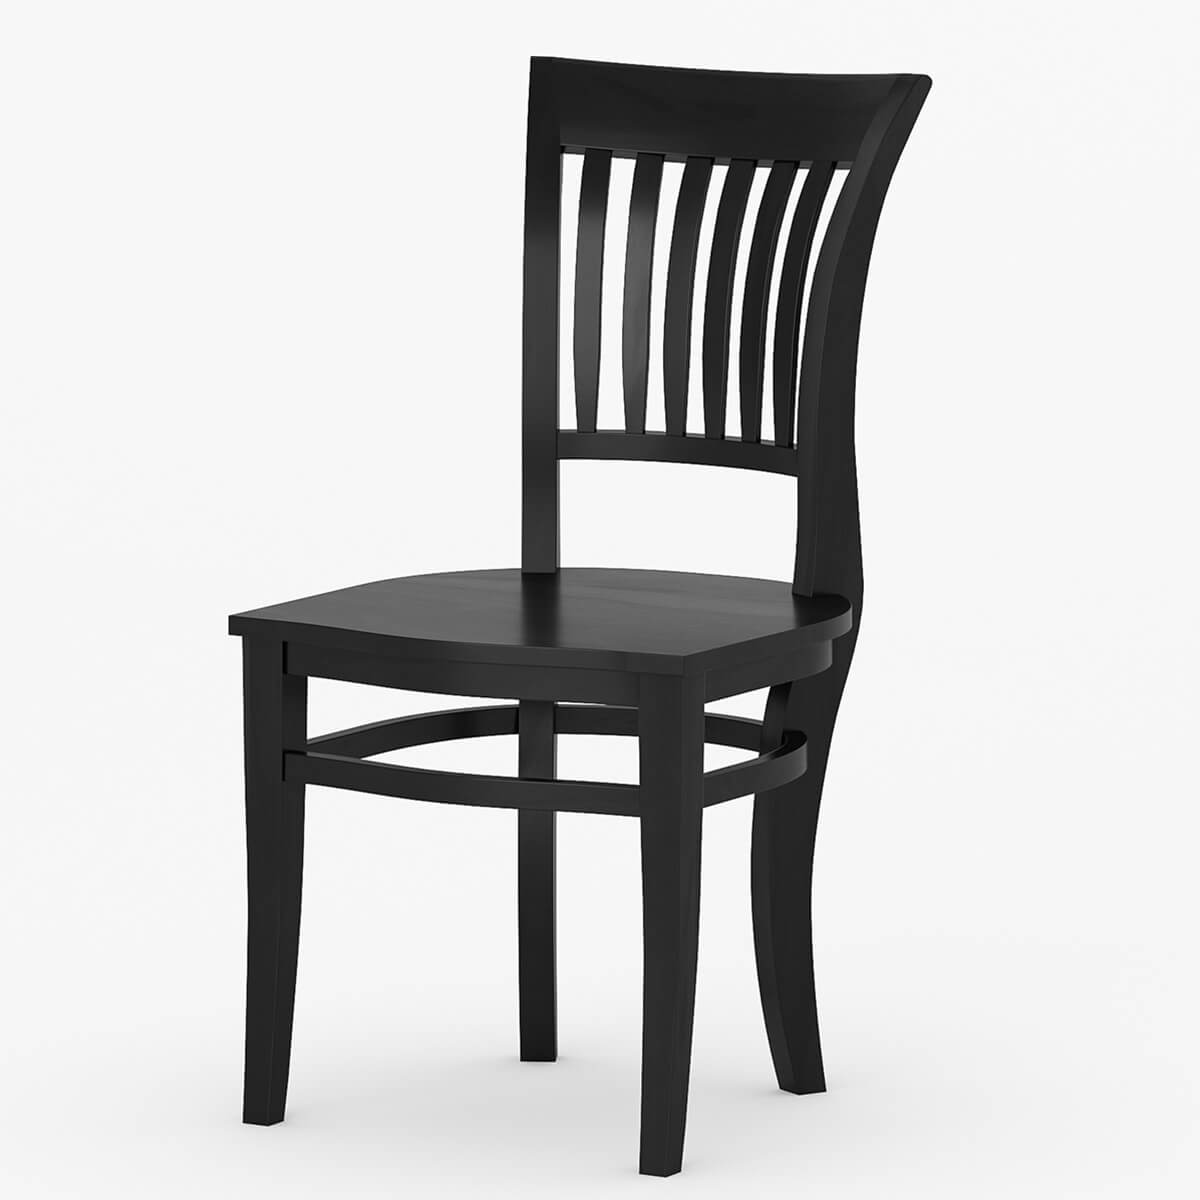 Unfinished Dining Room Chairs Sierra Nevada Solid Wood Kitchen Side Dining Chair Furniture